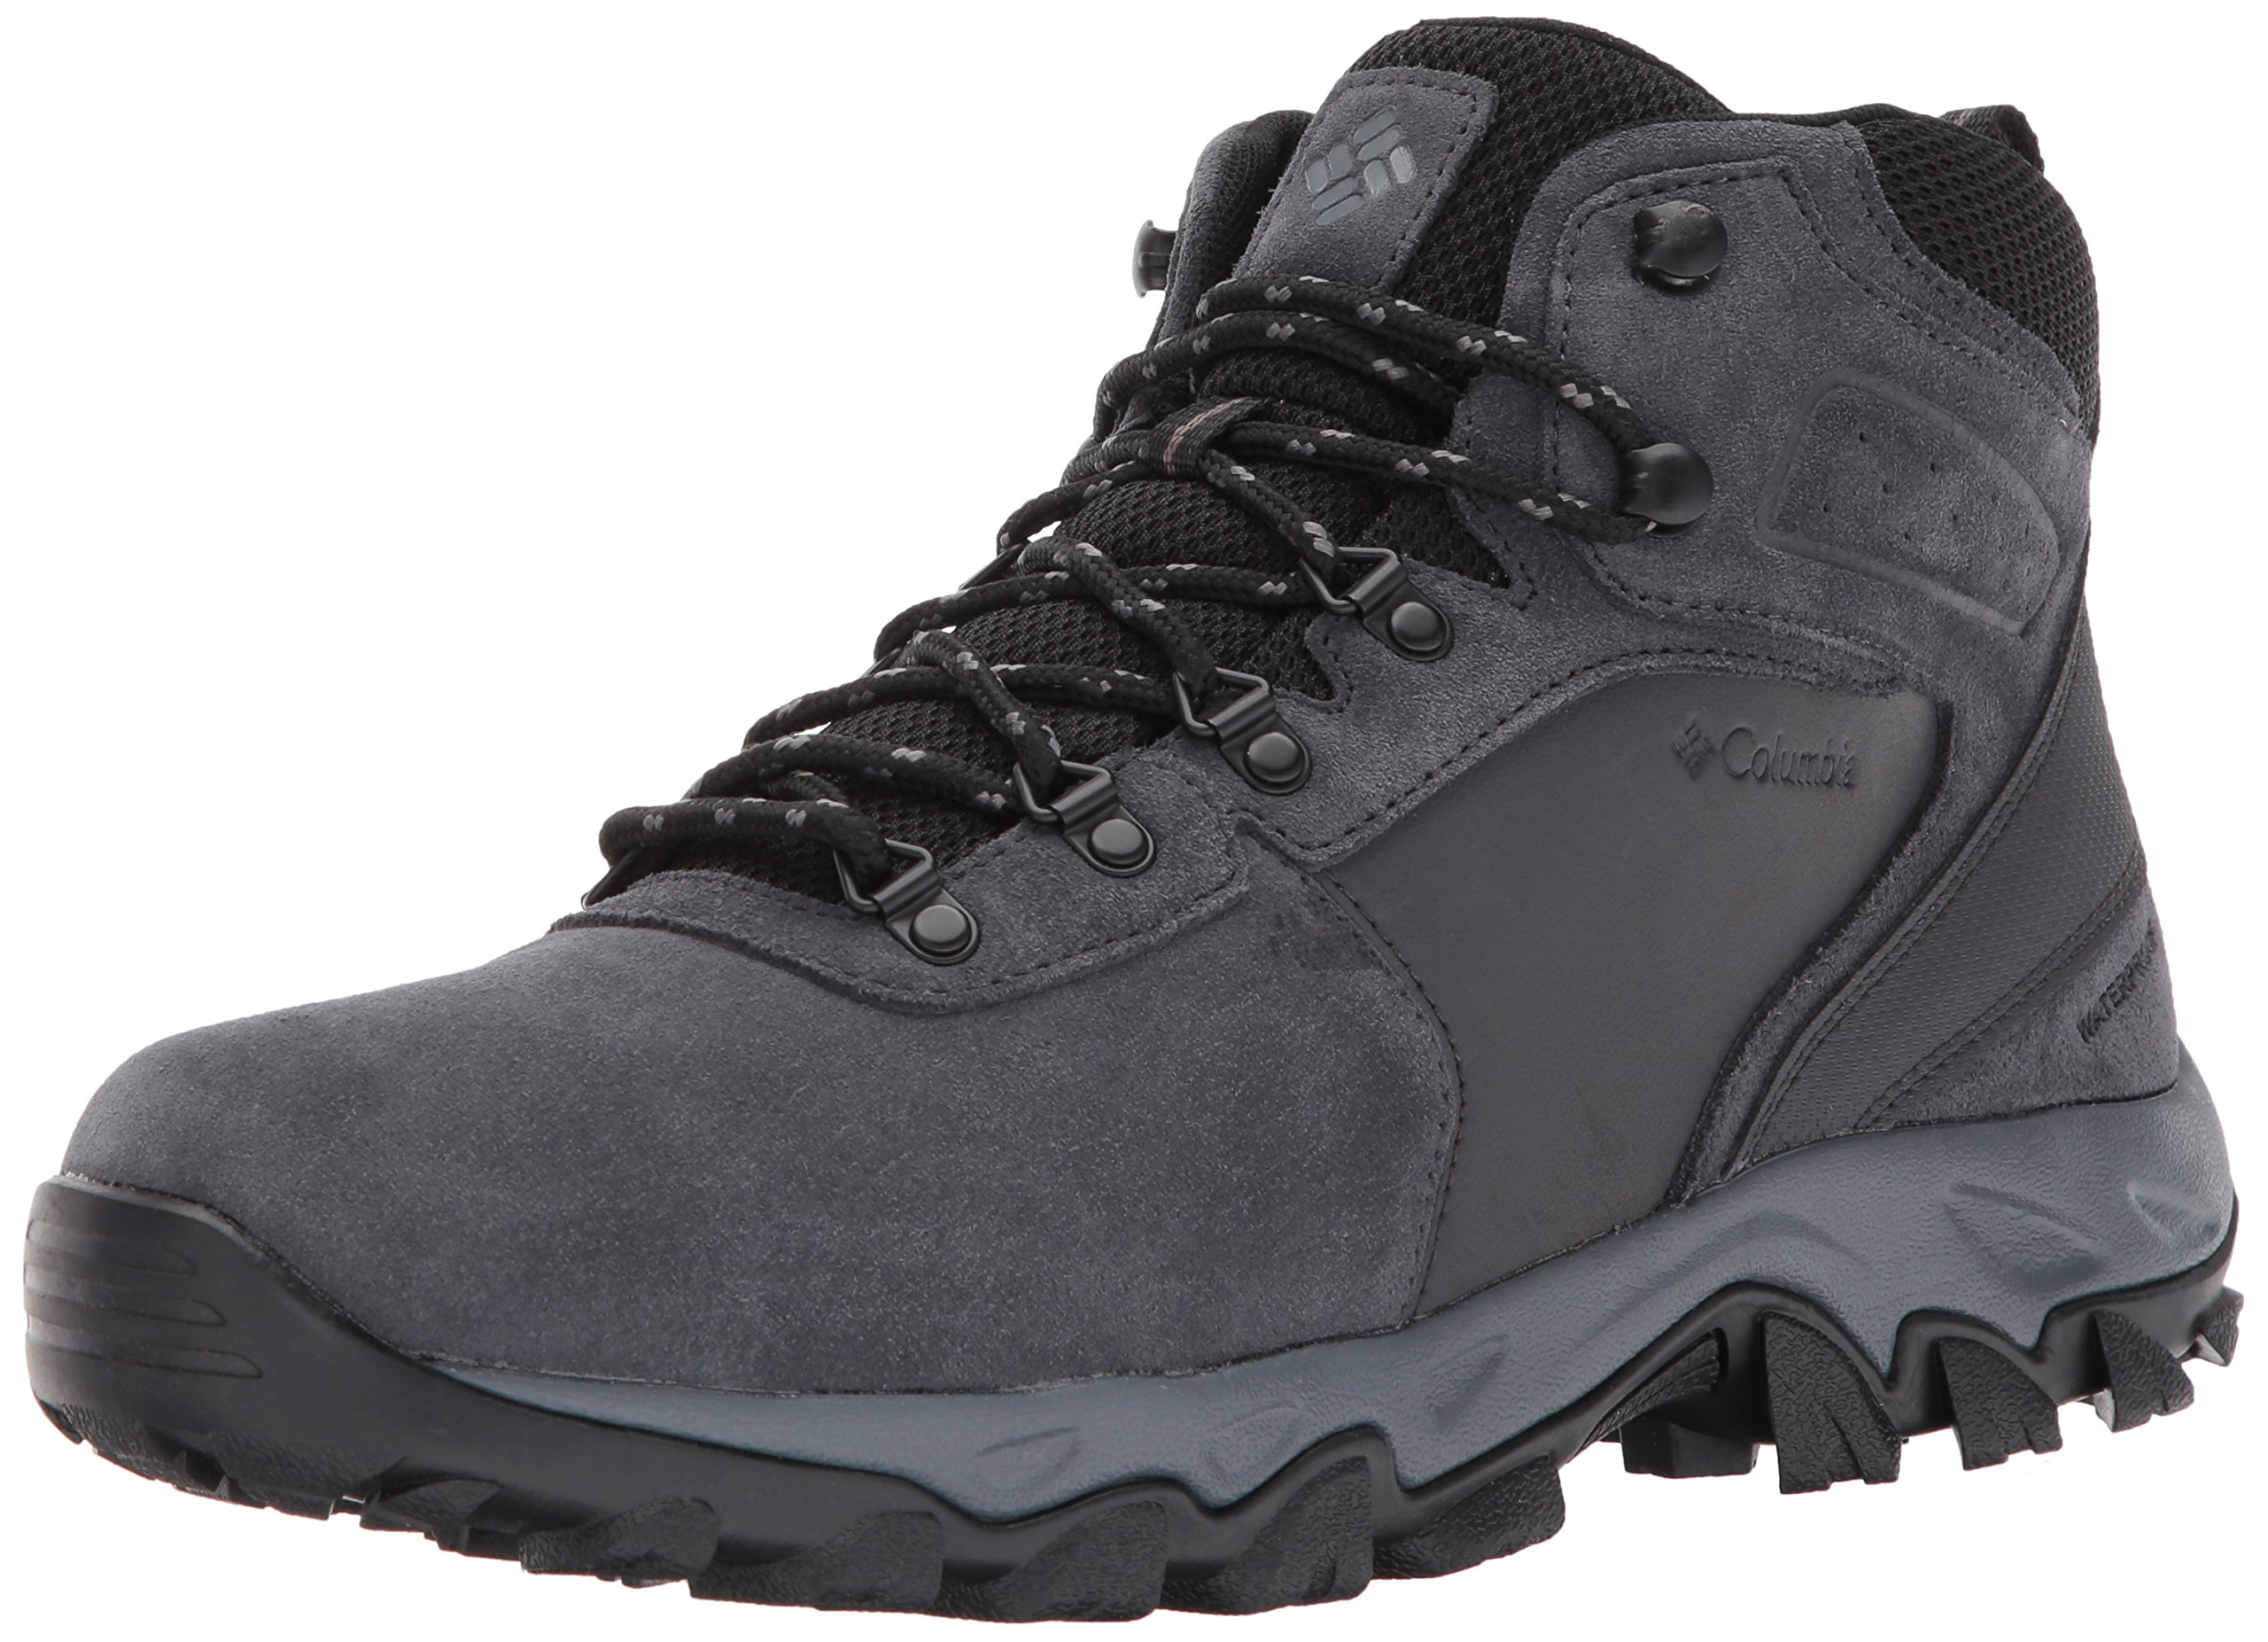 Columbia Men's Newton Ridge Plus II Suede Waterproof Boot, Breathable with High-Traction Grip Hiking, shark, black 7 Regular US